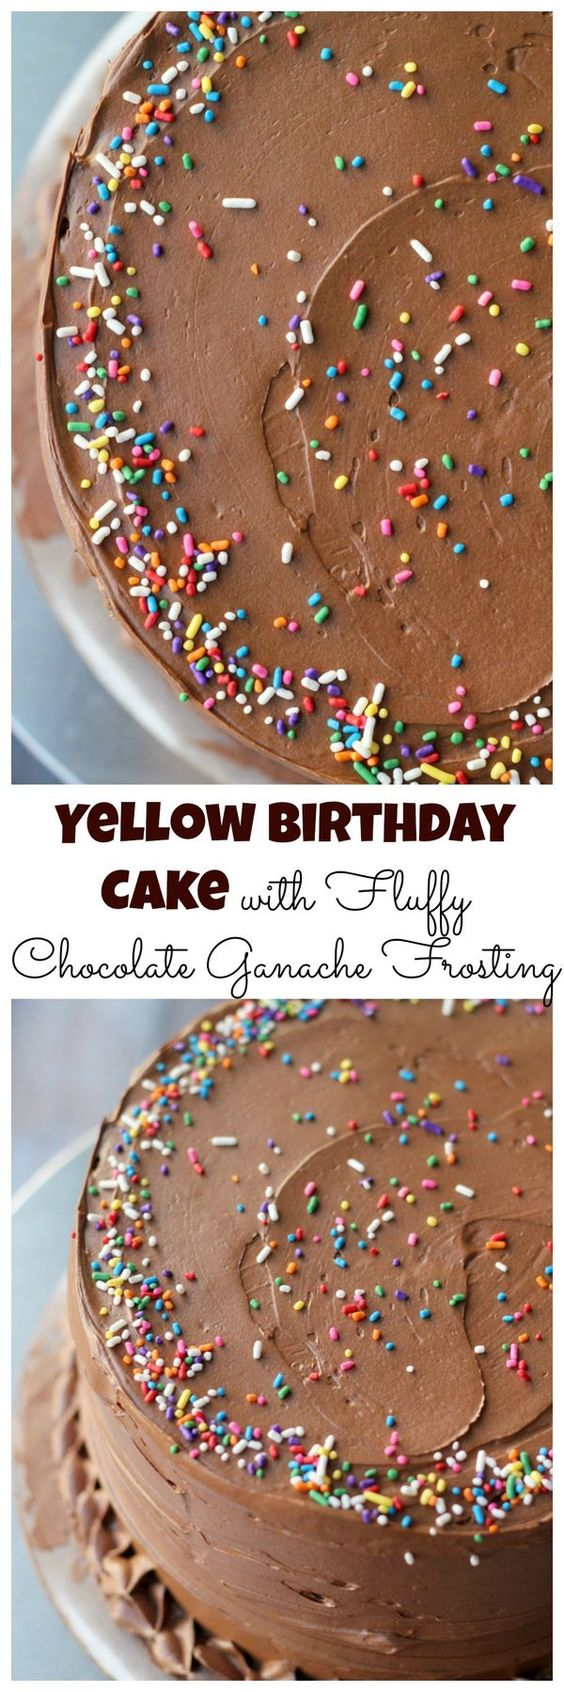 with this yellow birthday cake with fluffy chocolate ganache frosting ...